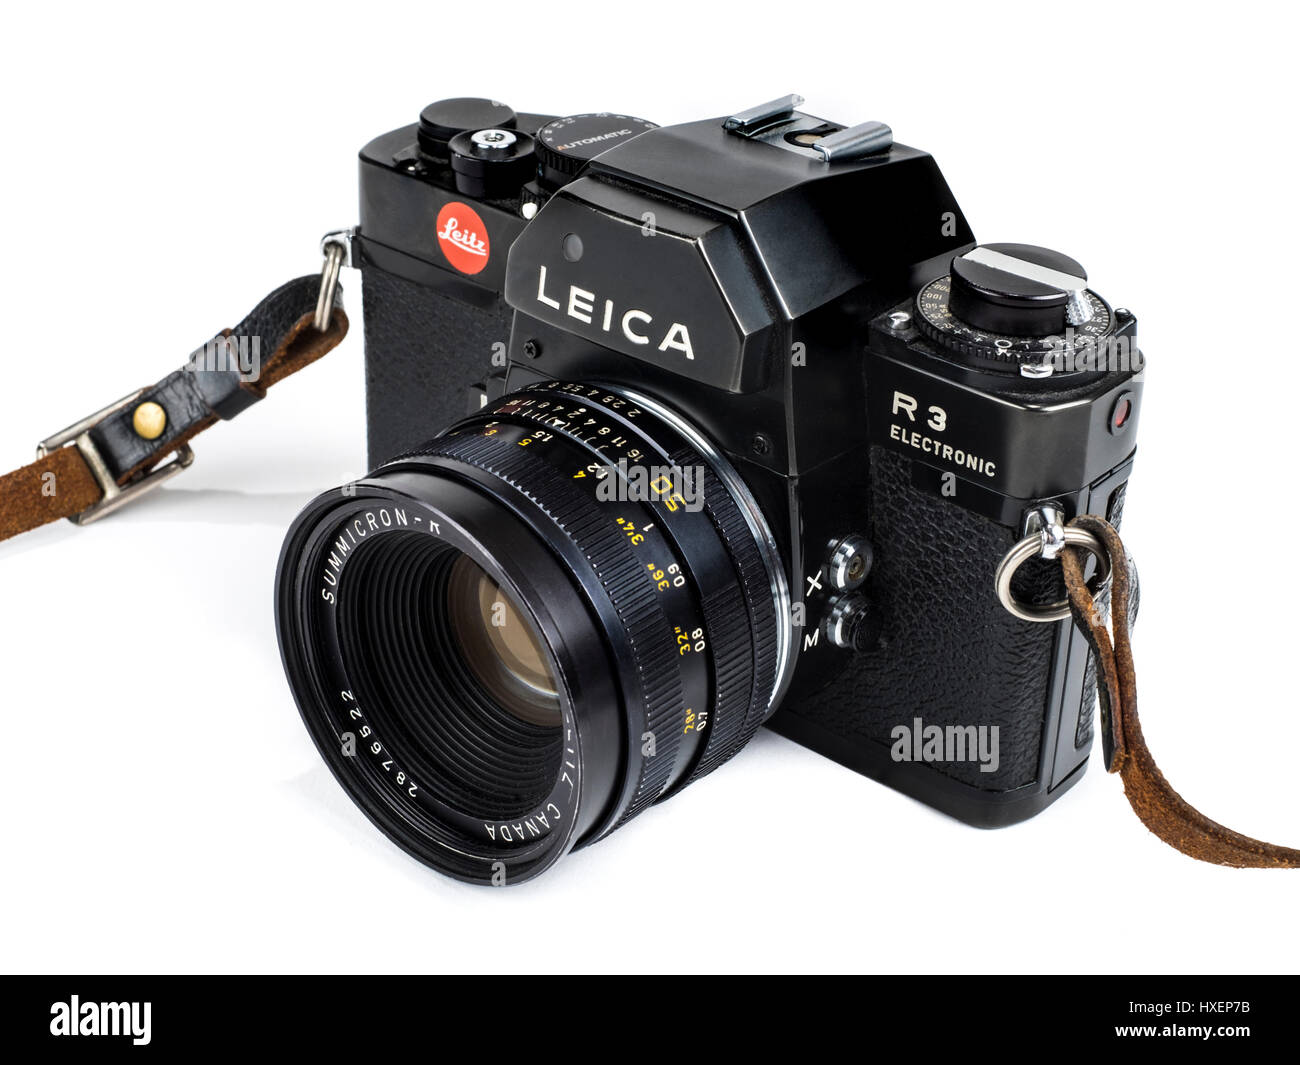 Vintage Leica R3 Electronic 35mm SLR film camera with Summicron-R 50mm f/2 manual focus lens from 1976. - Stock Image